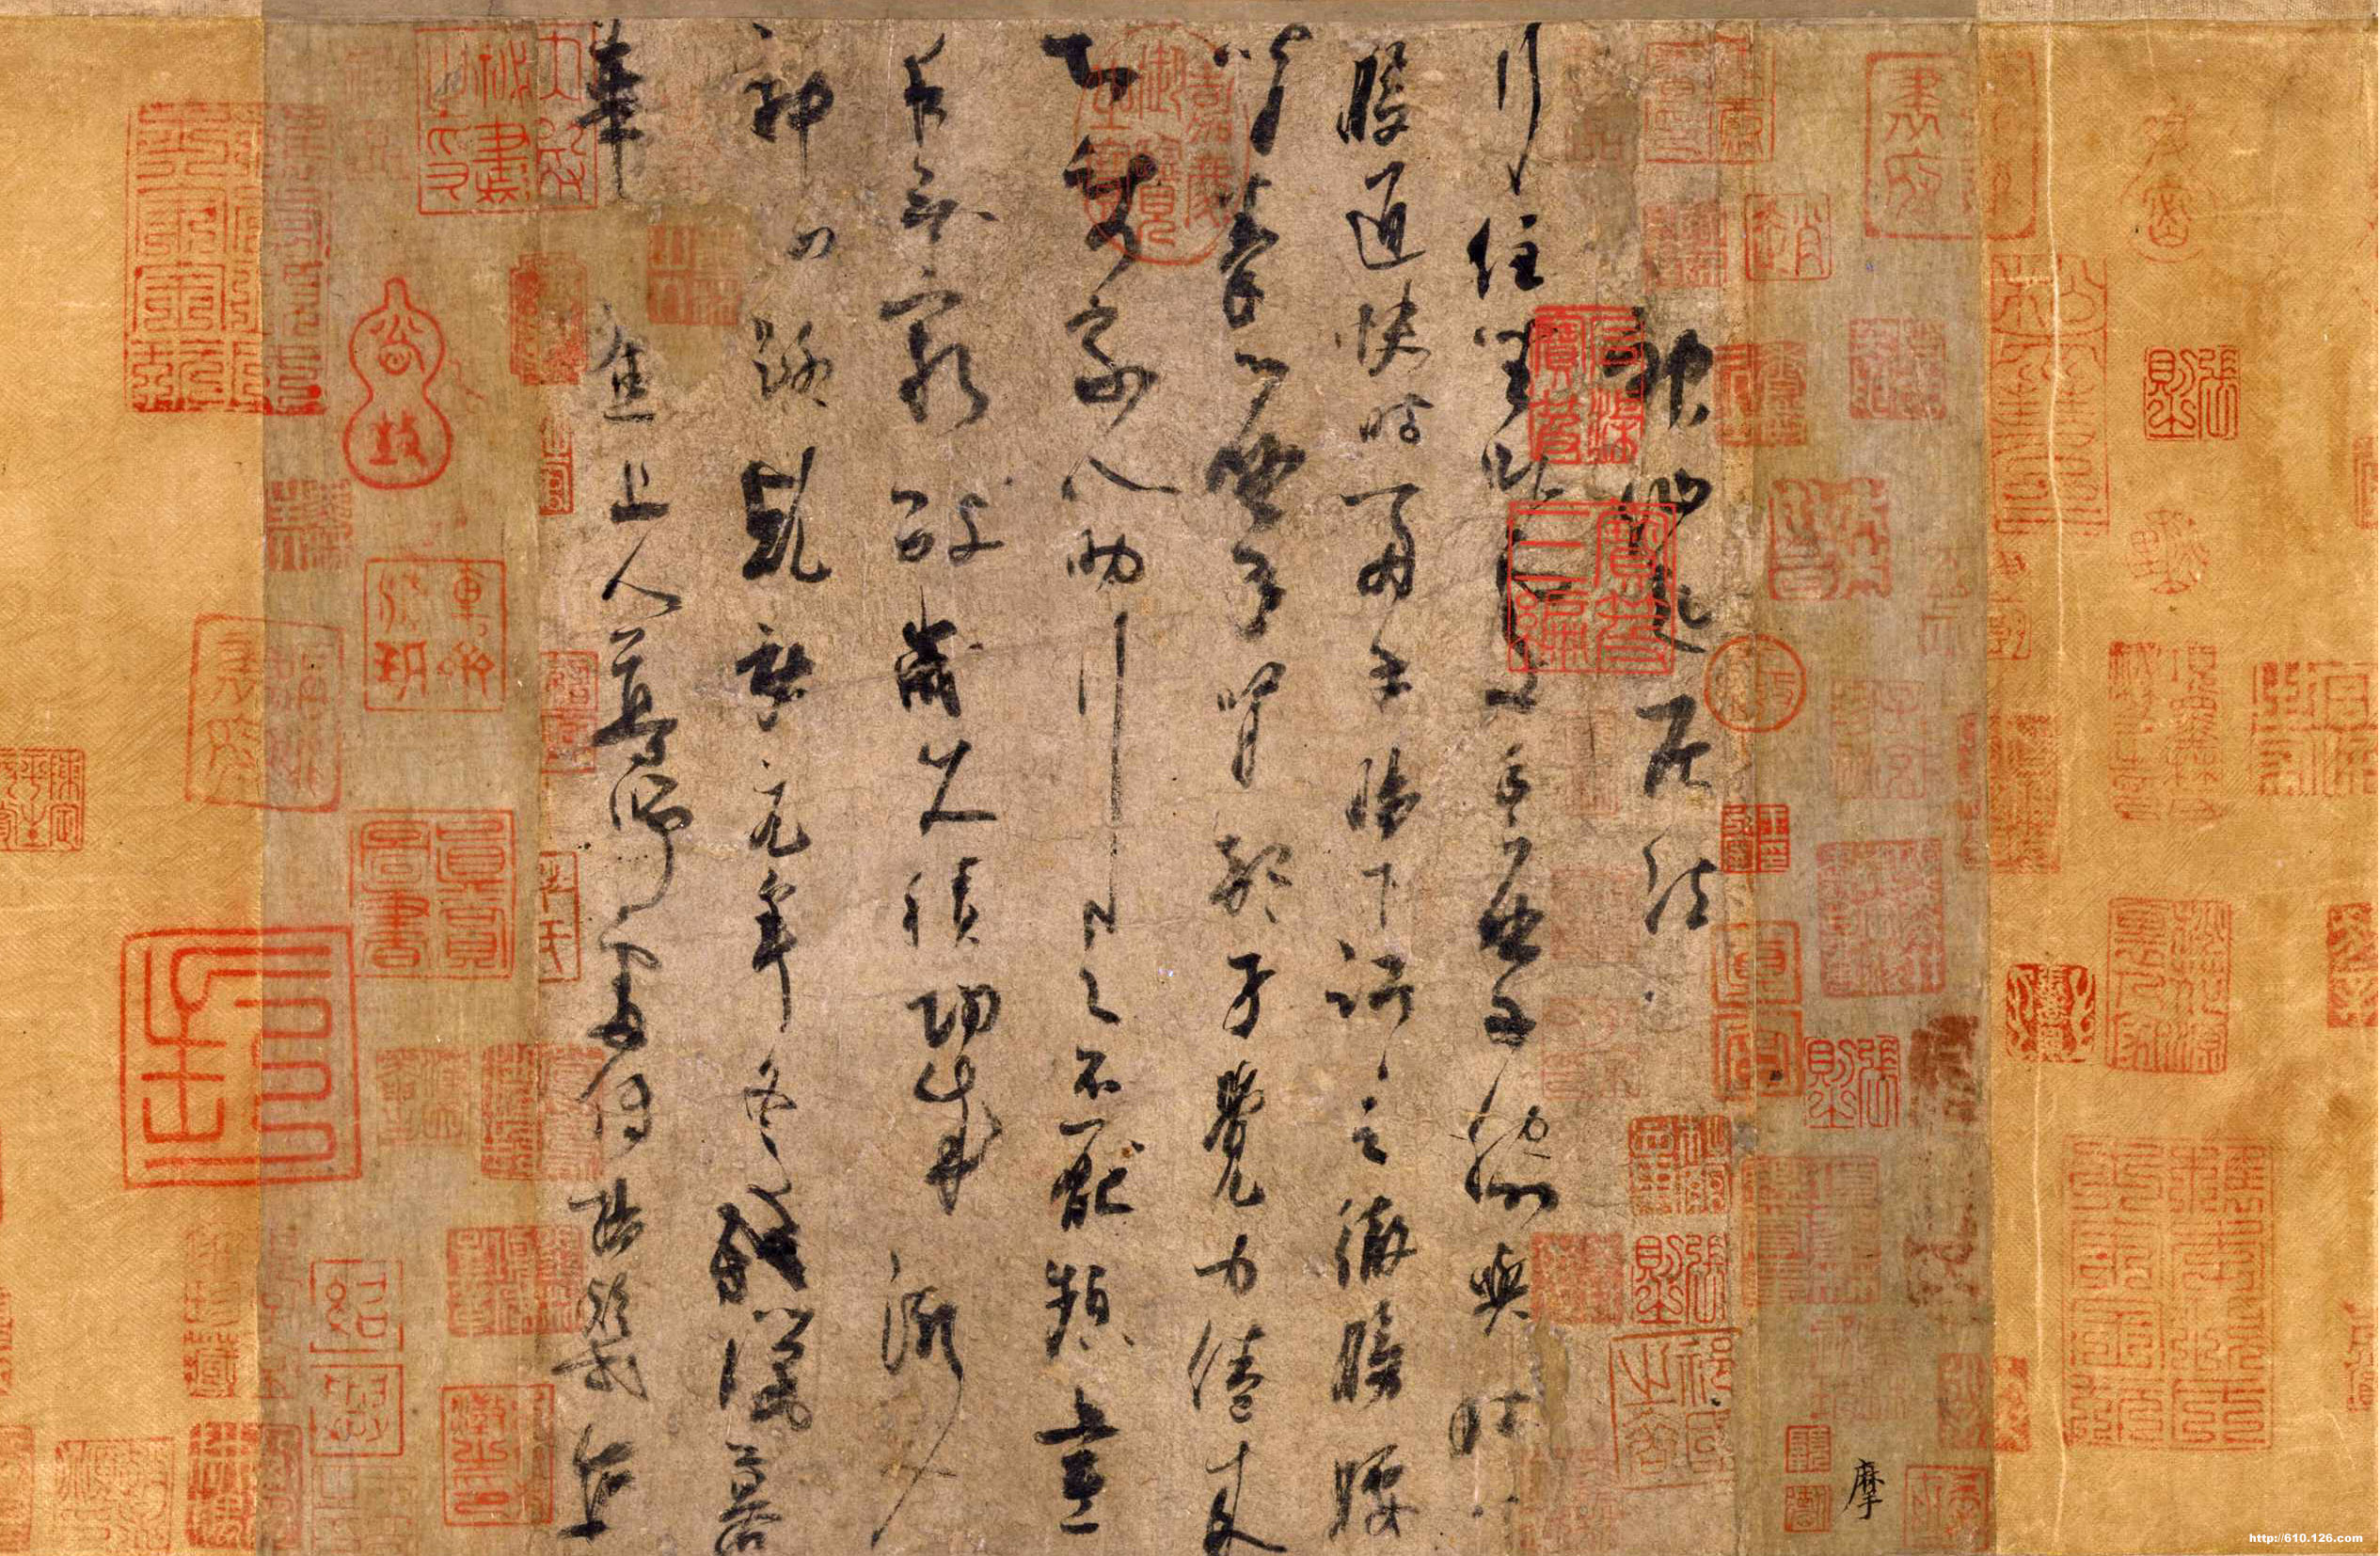 Calligraphy by Shaoshi Yang on Immortal living massage method.